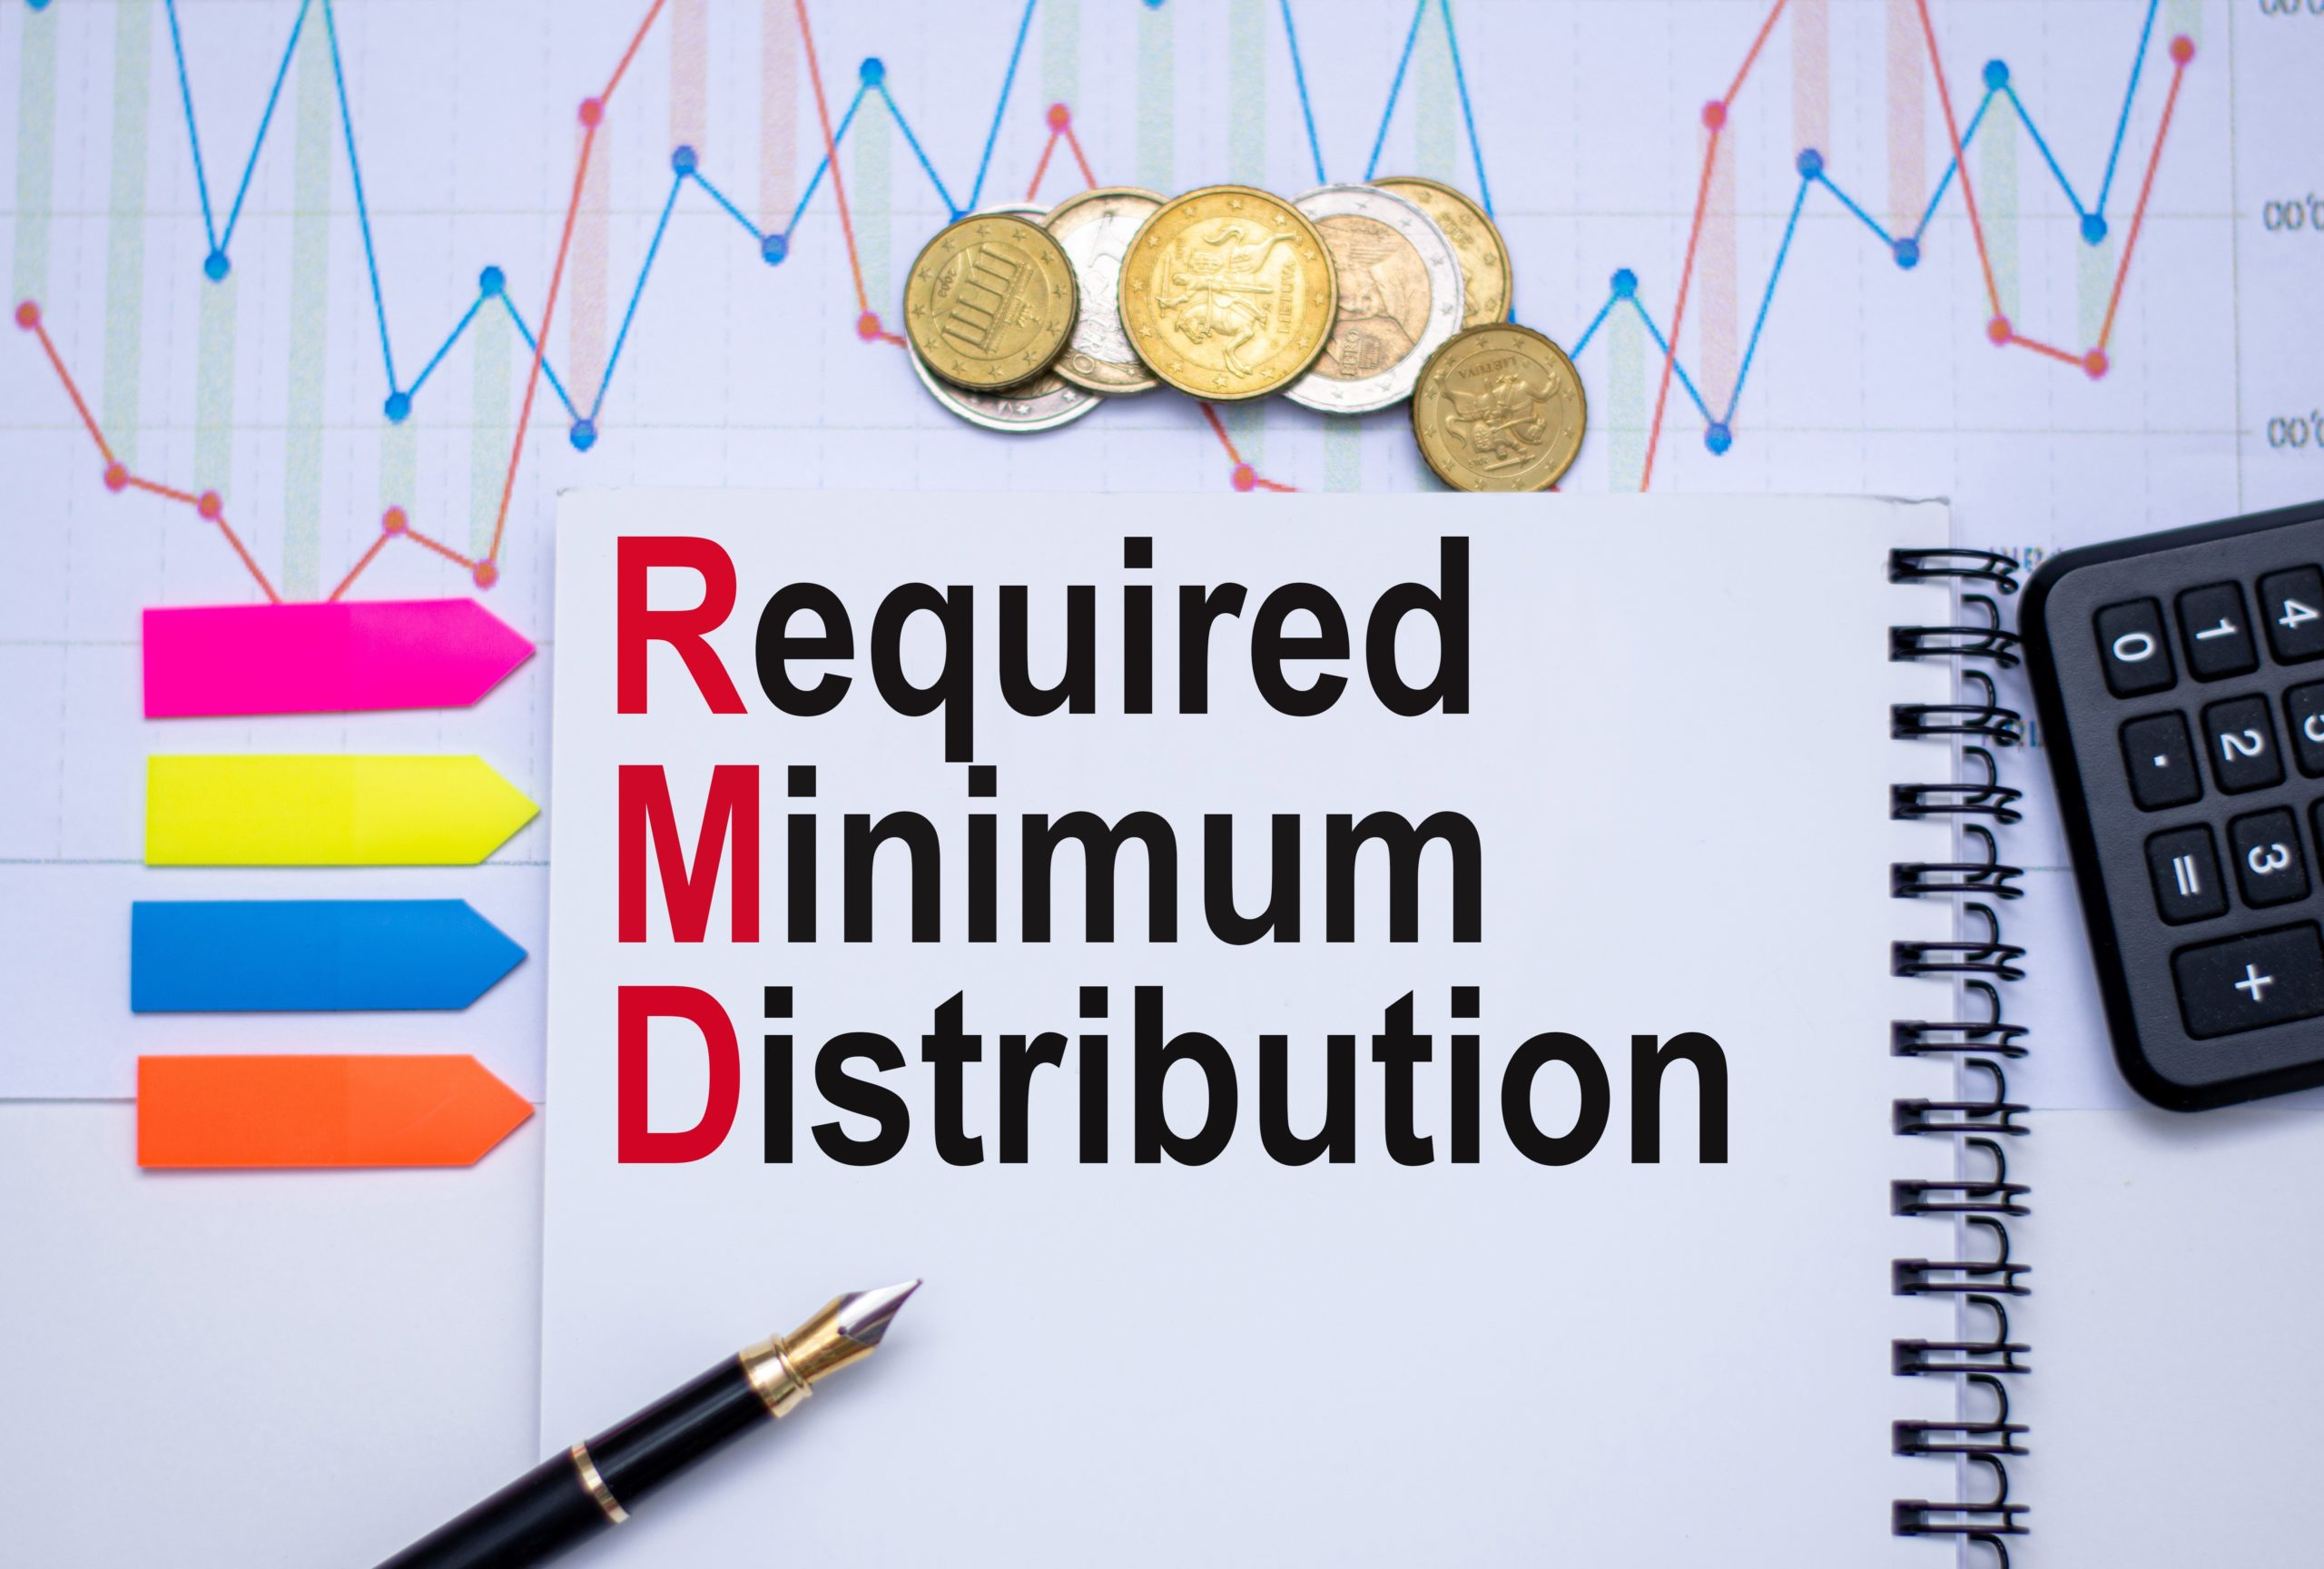 Required Minimum Distribution graphic with currency, graph and calculator.